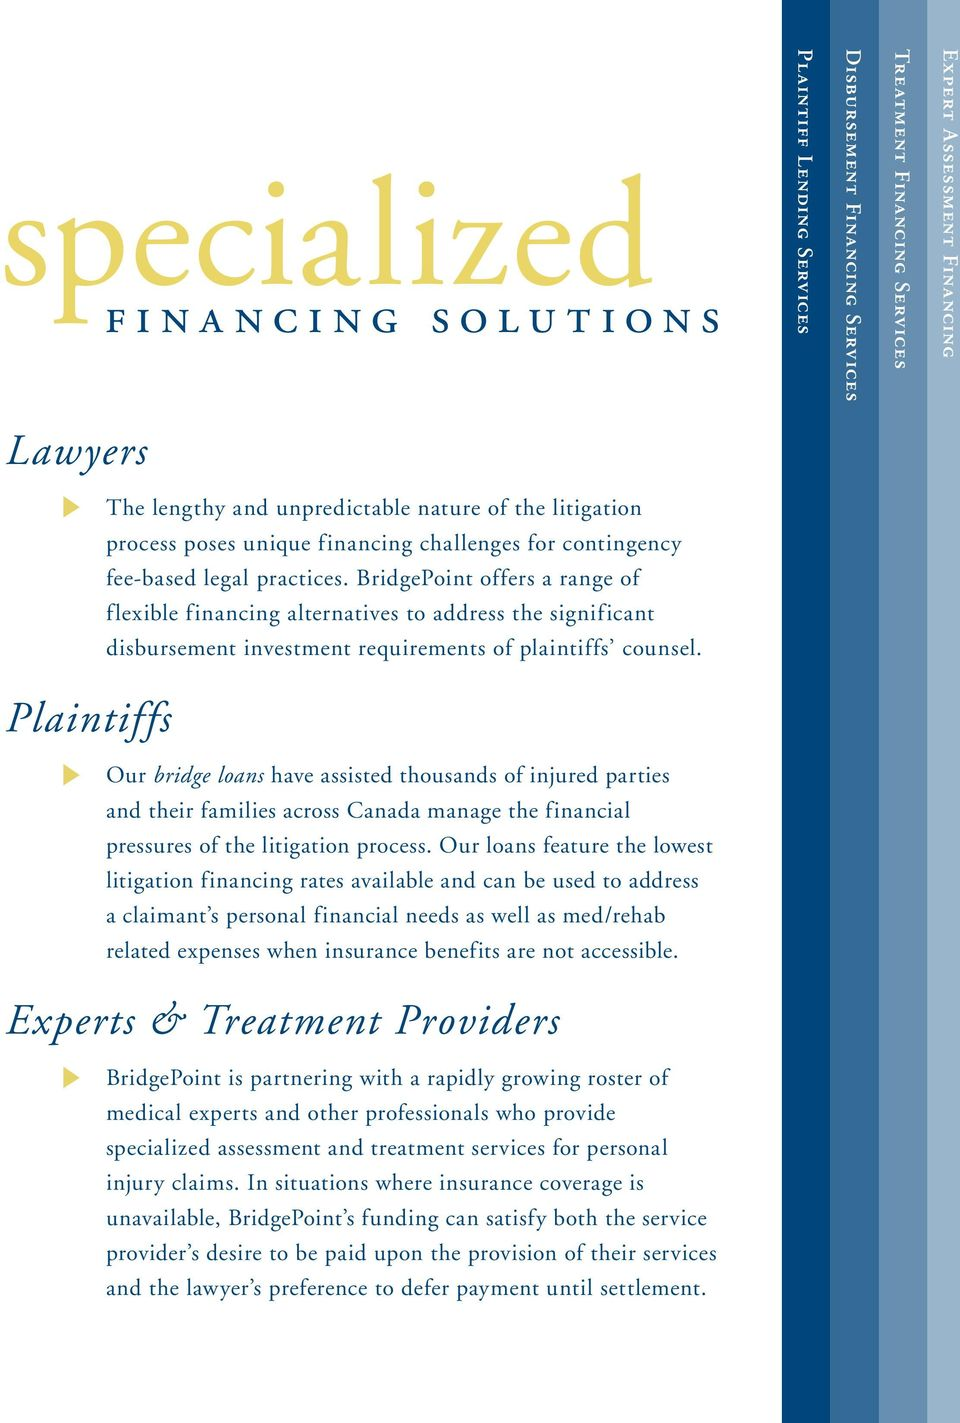 BridgePoint offers a range of flexible financing alternatives to address the significant disbursement investment requirements of plaintiffs counsel.